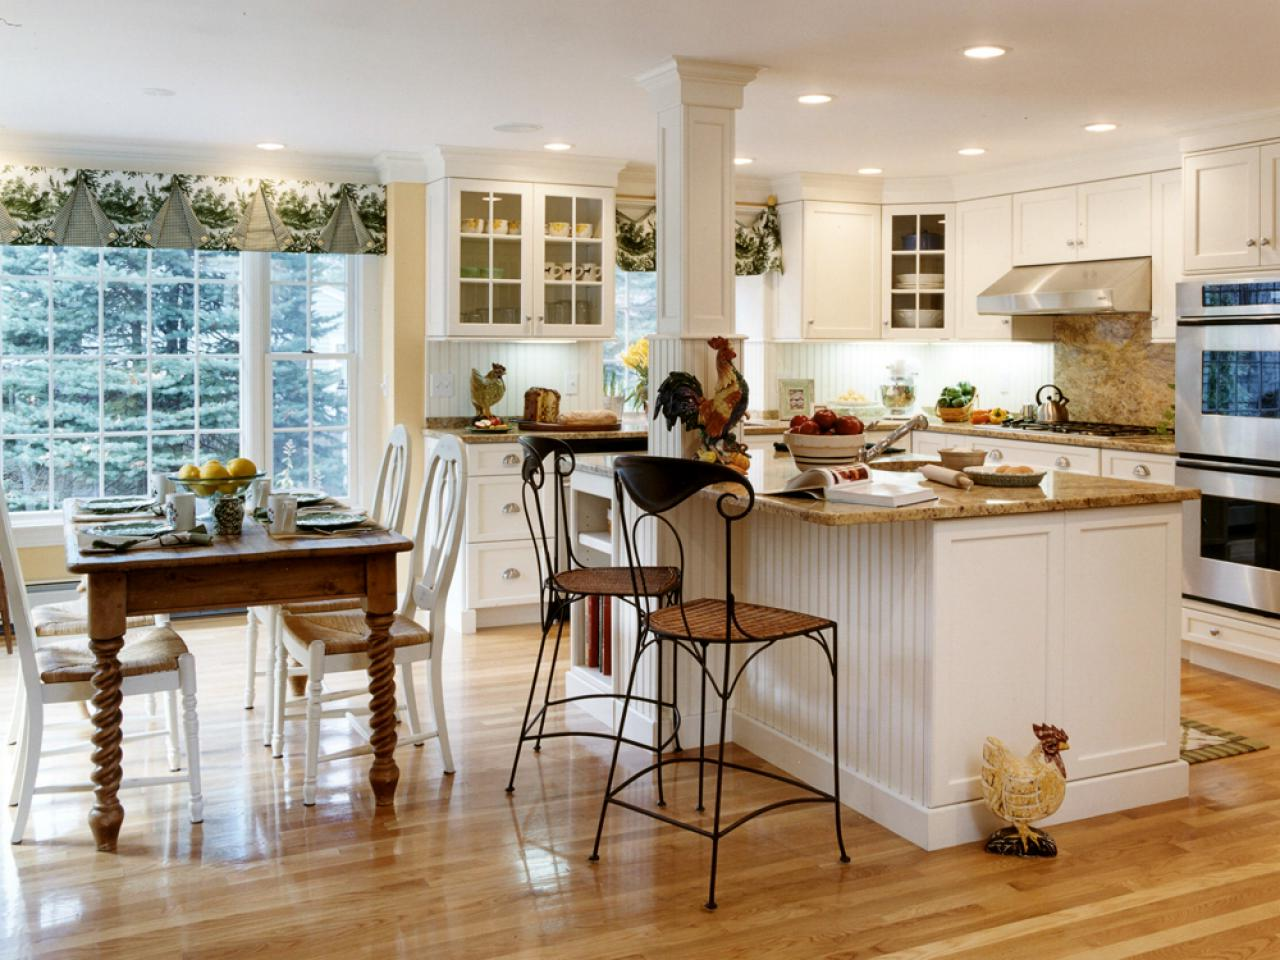 Kitchen design images kitchen in country style with for How to style a kitchen